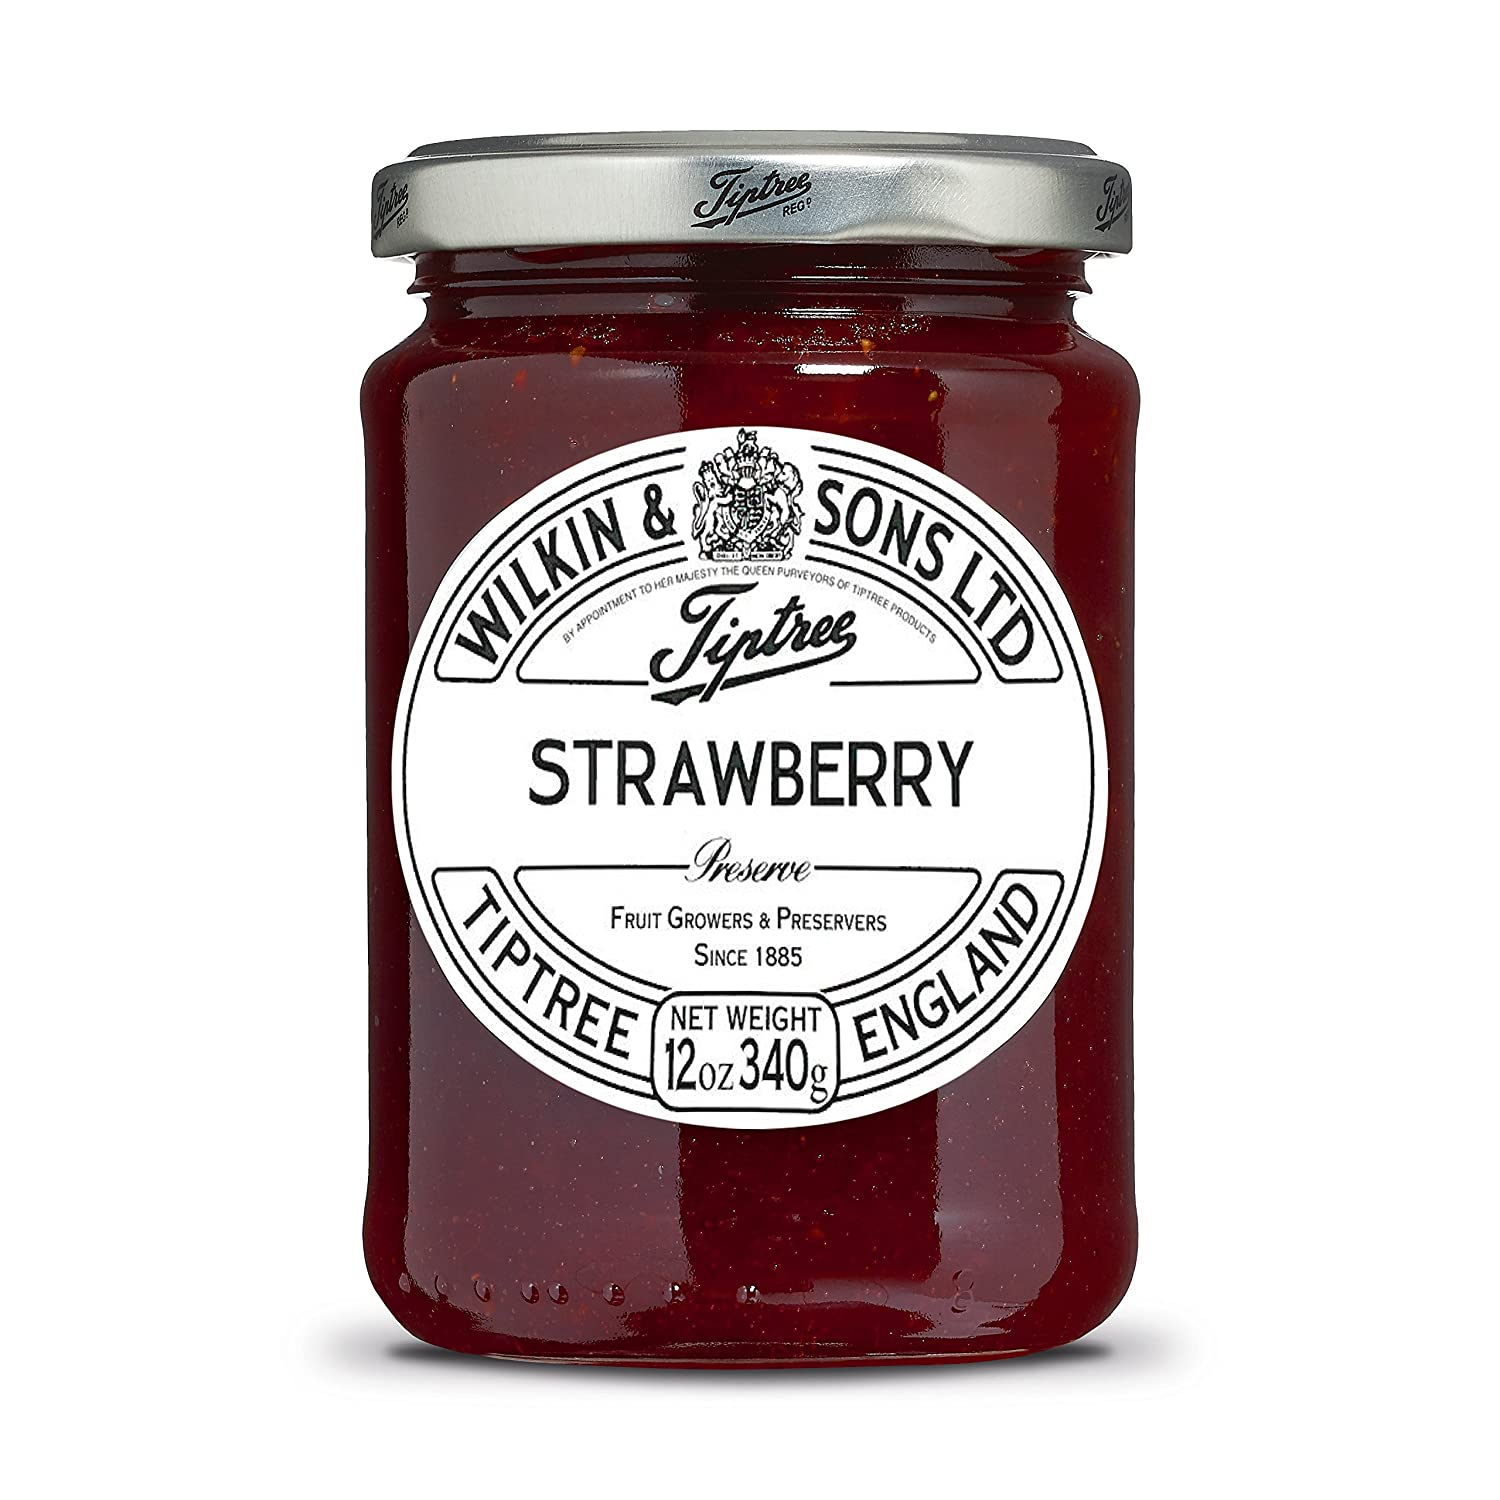 Tiptree Strawberry Preserve Max 48% OFF 12 Ounce of Super-cheap 6 Pack Jars